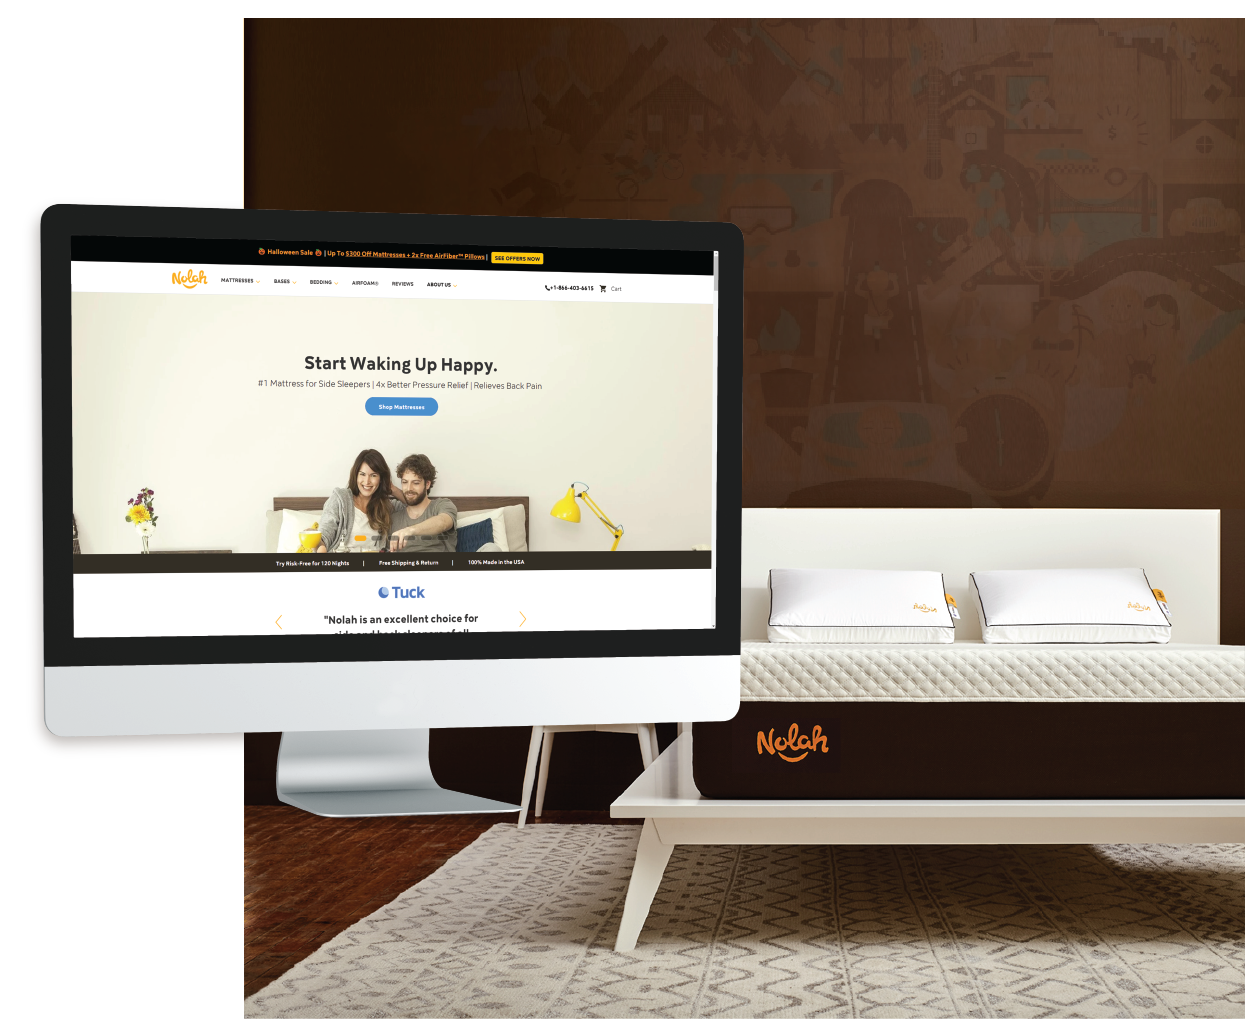 image of Nolah Mattress website on desktop over image of mattress background